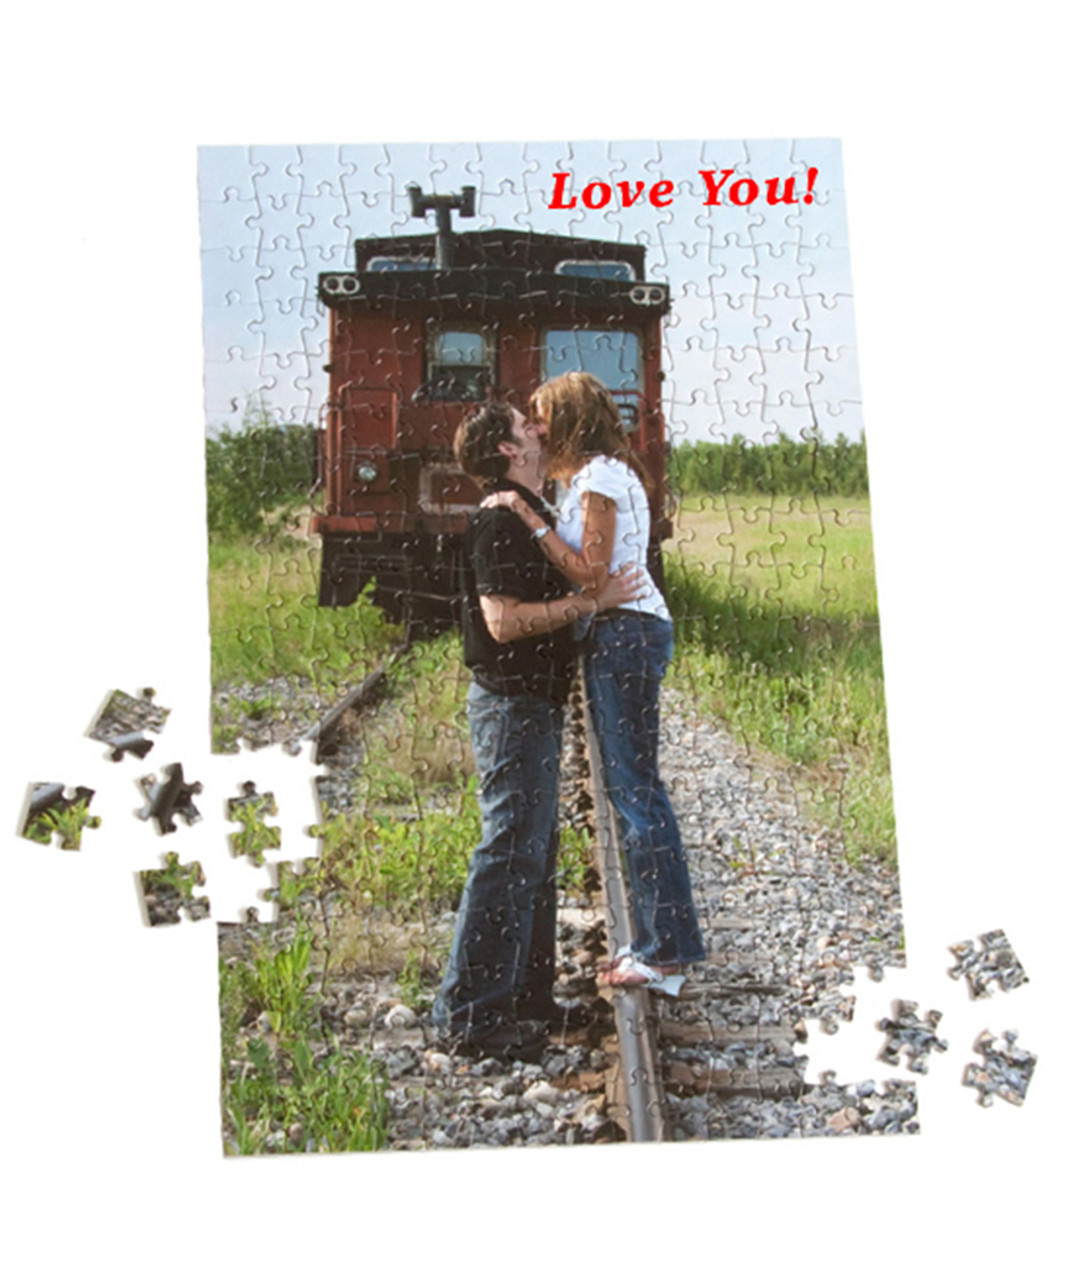 custom personalized jigsaw puzzle 252 pieces includes a cardboard